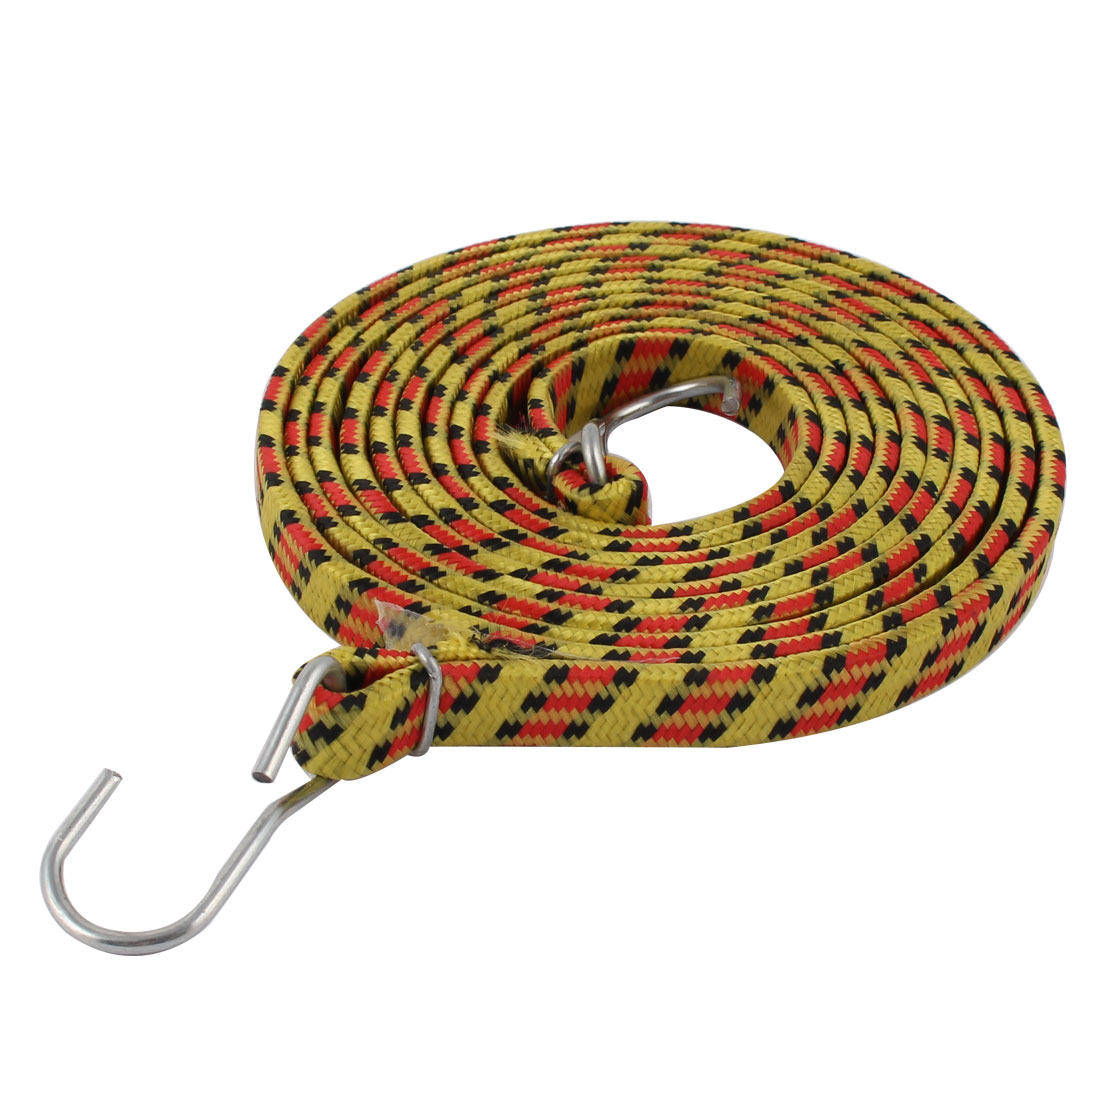 Bicycle Car Metal Hook Flat Stretchy Bundling Luggage Cord Rope Strap Yellow Red